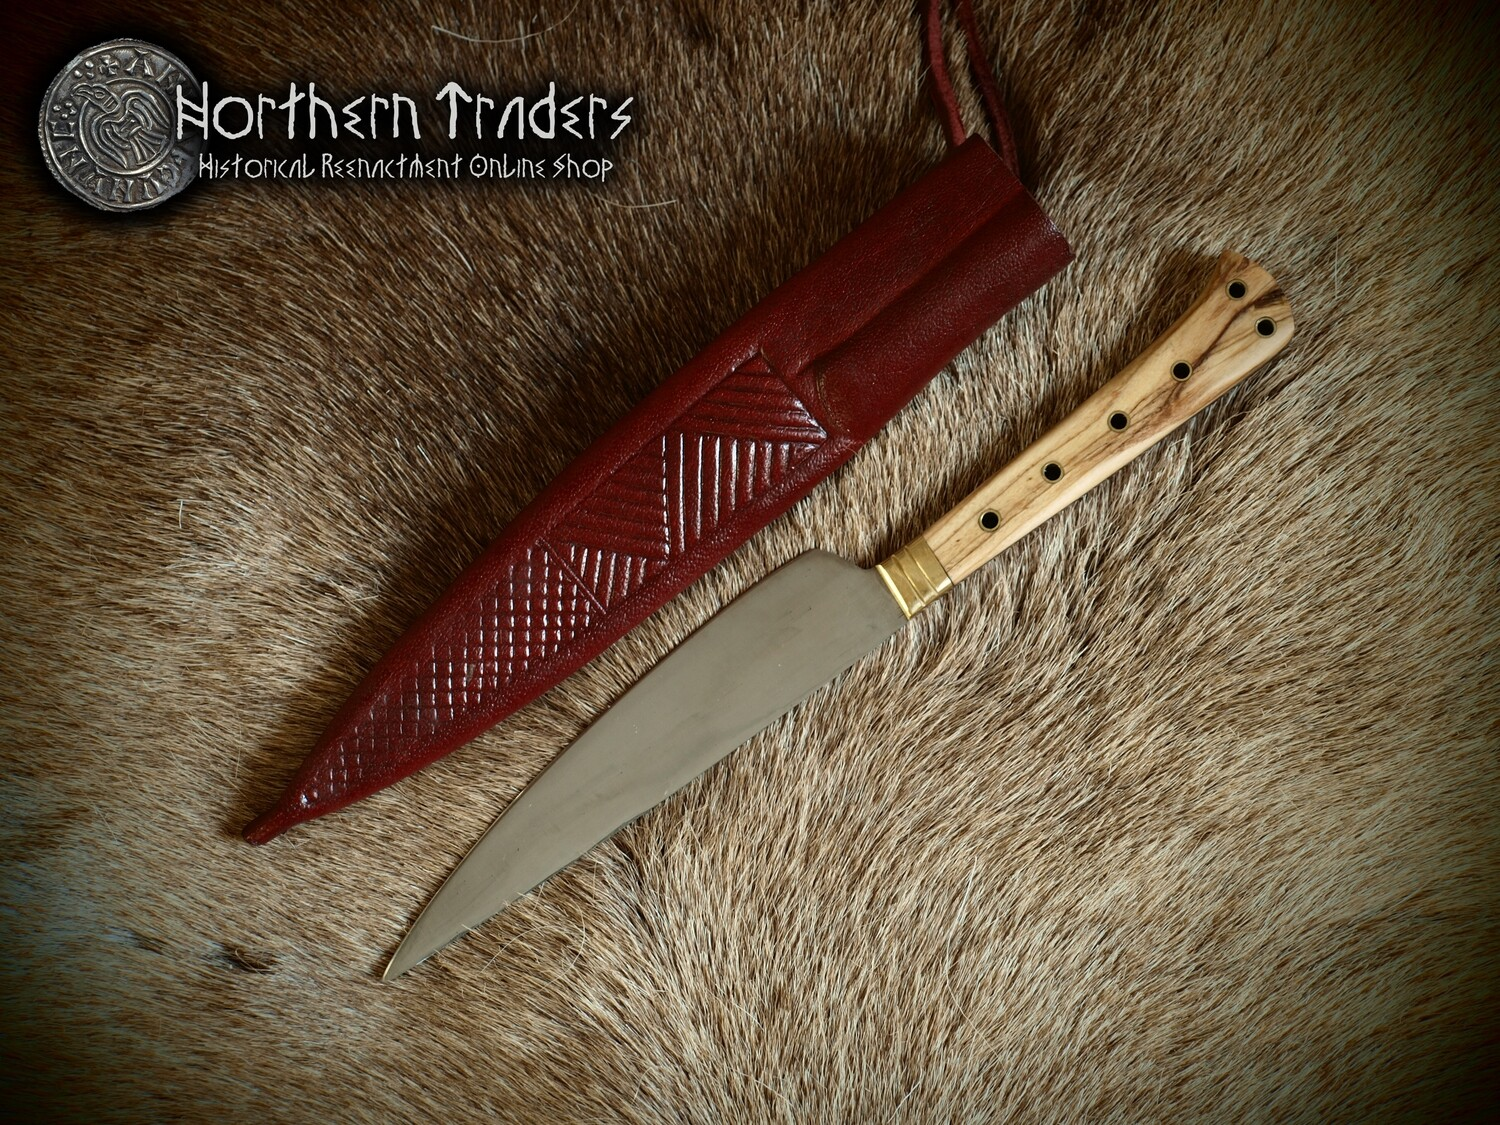 Medieval Knife - Deluxe Version with Decorated Sheath